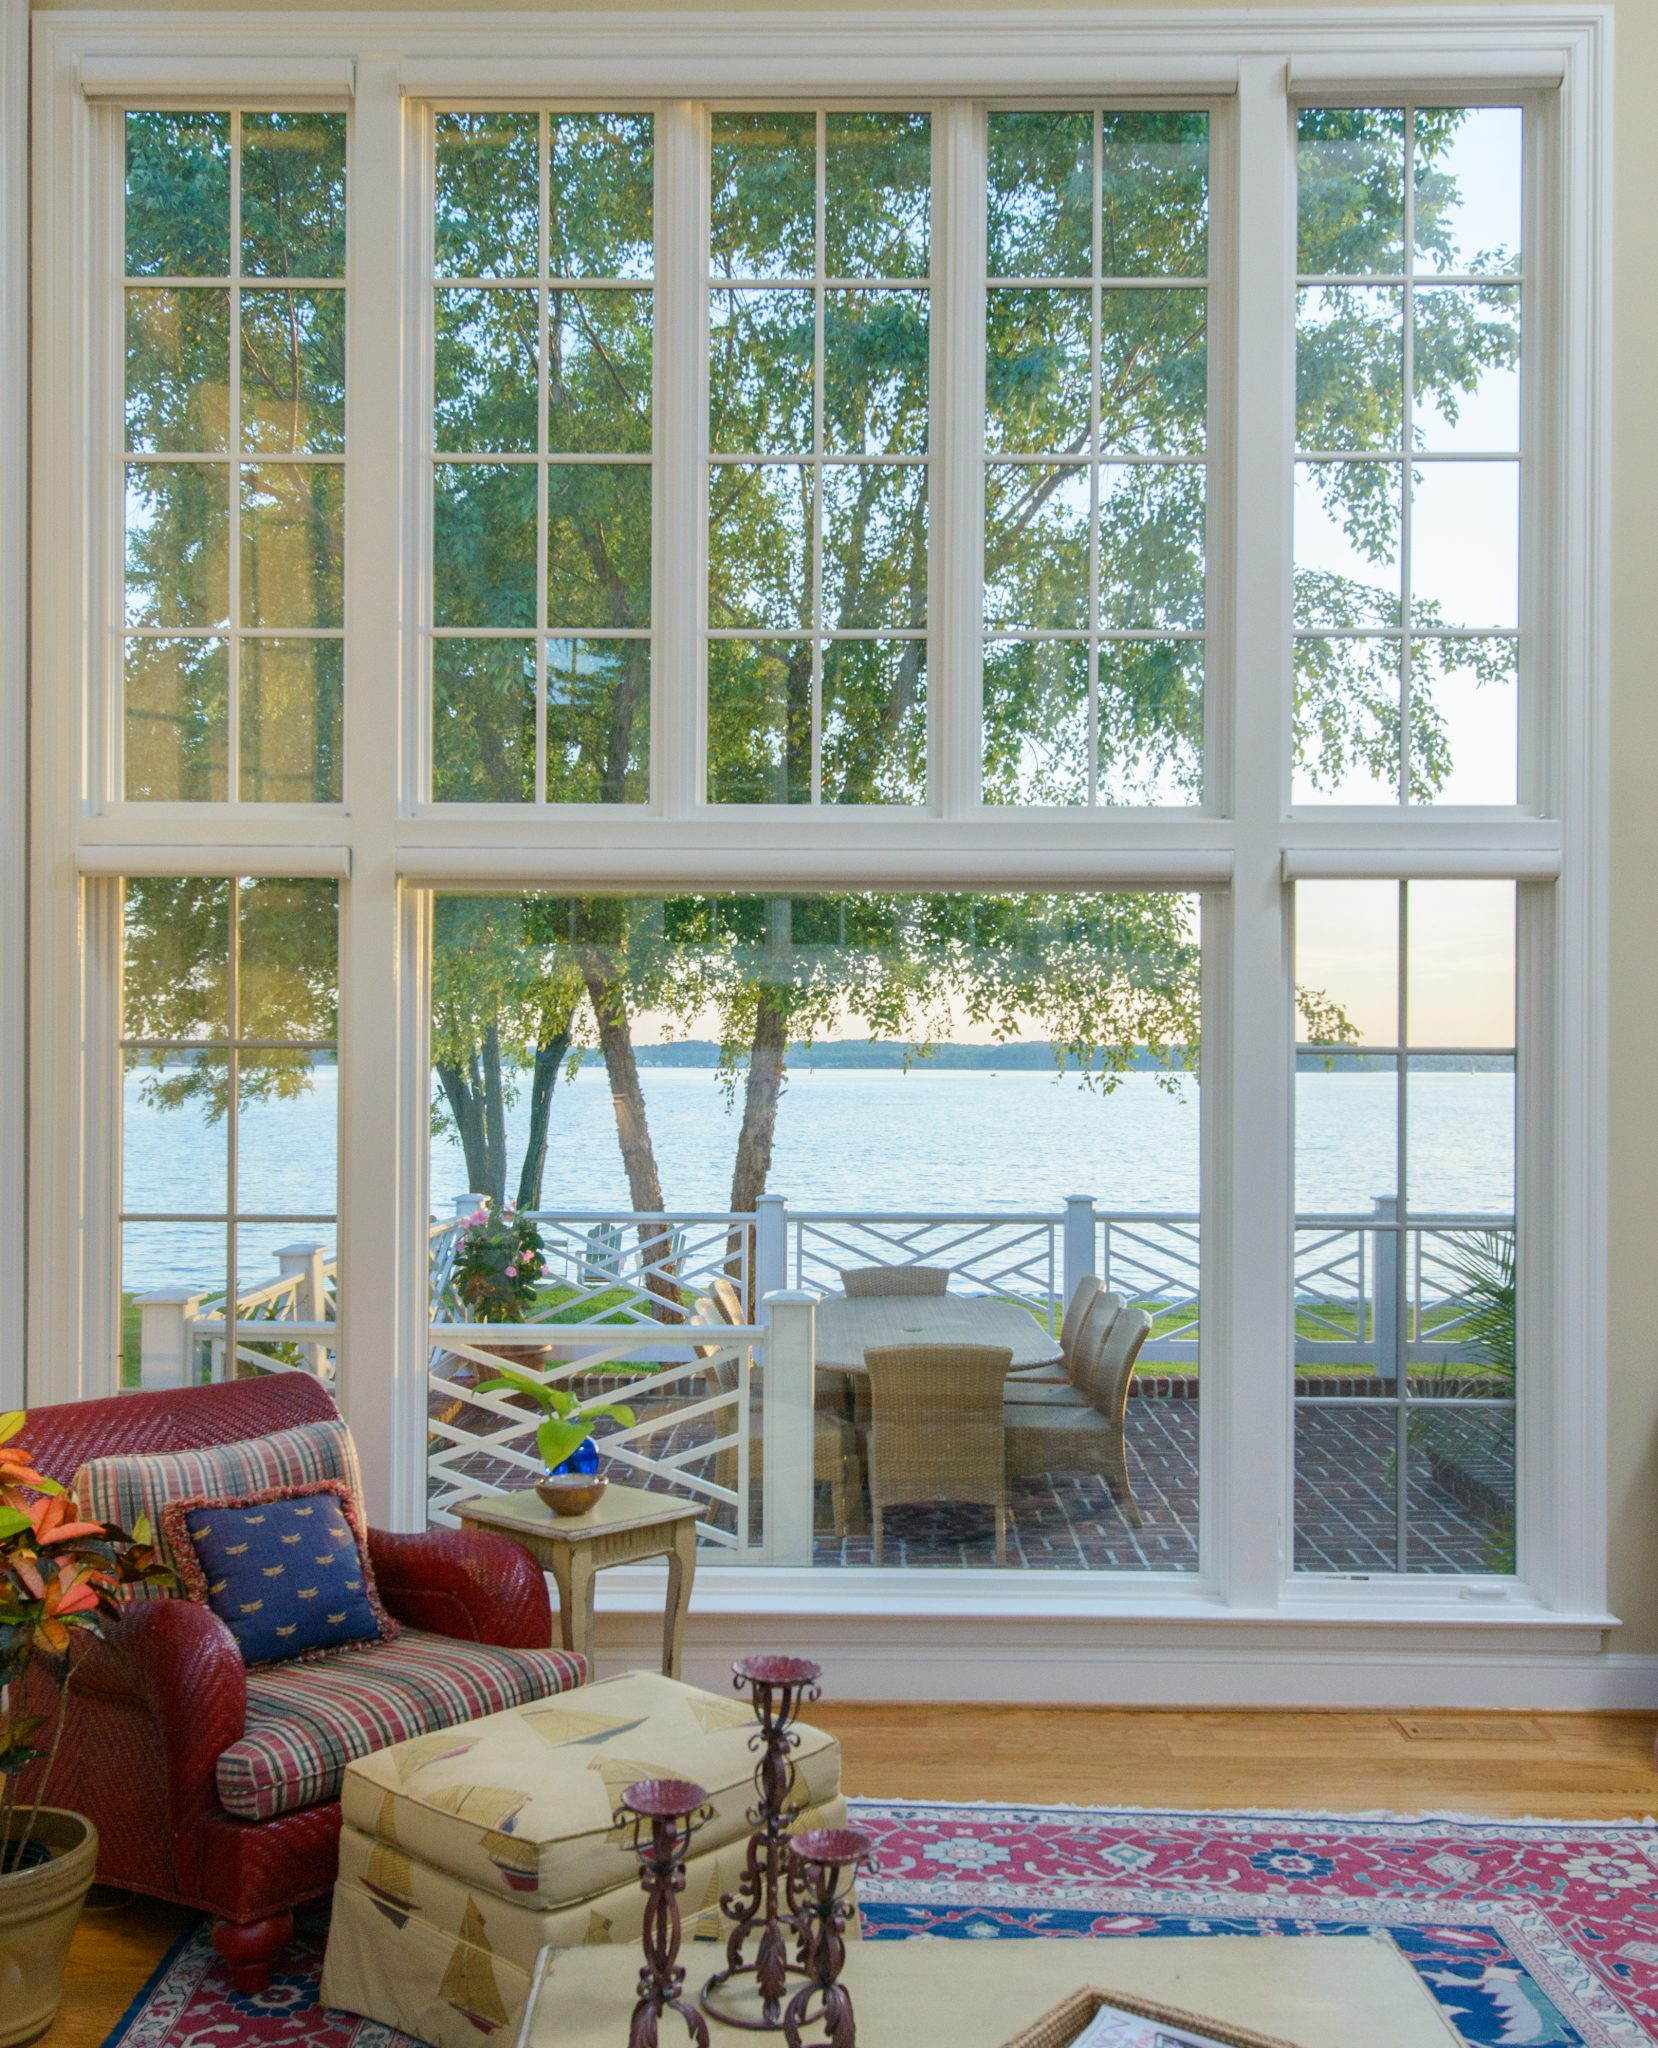 Windows & Patio Doors at J. F. Johnson Lumber